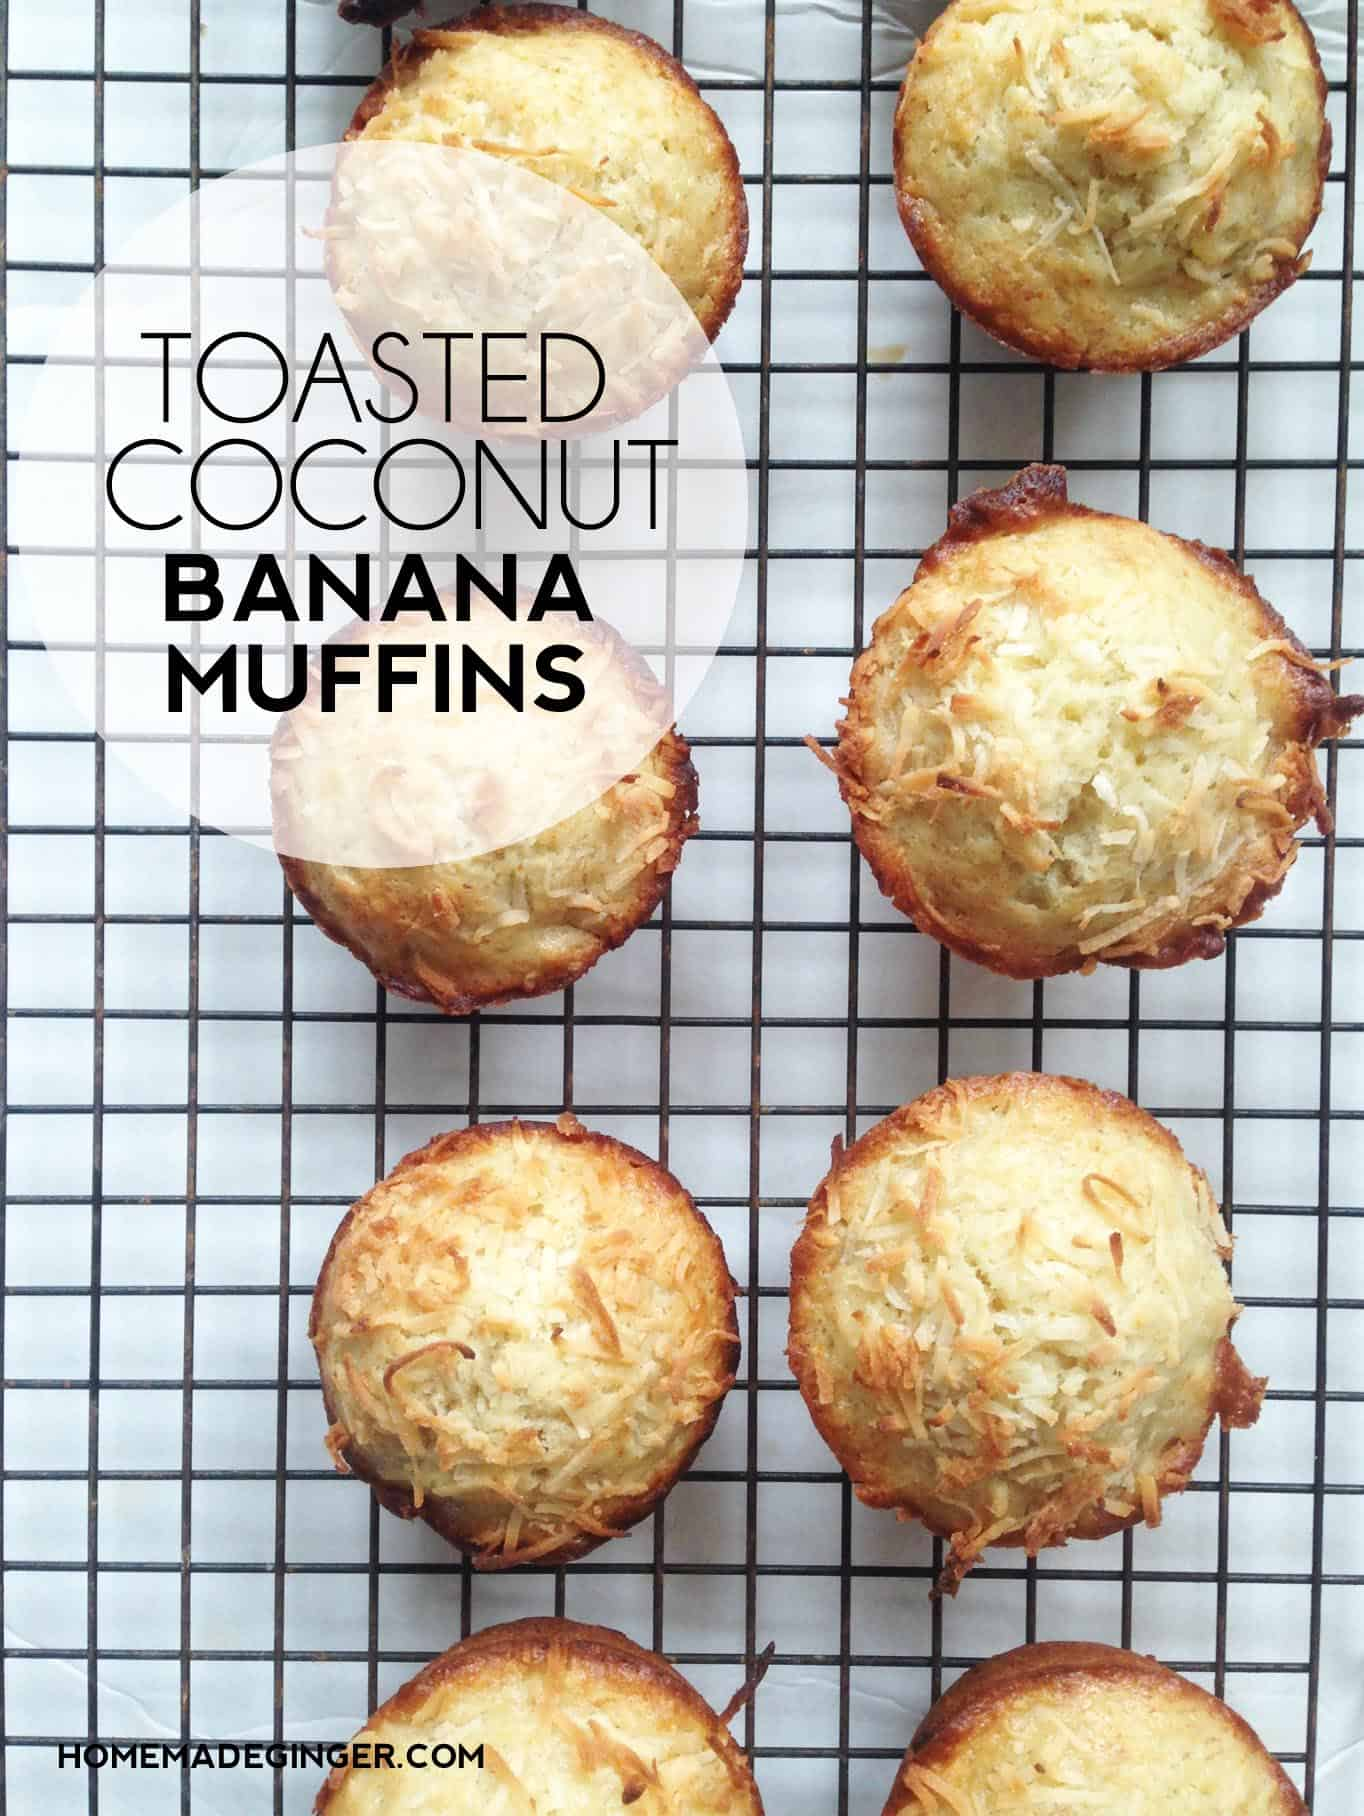 Take plain banana muffins up a few notches with this beyond yummy toasted coconut version. It's so easy to tweak and make to fit your needs!